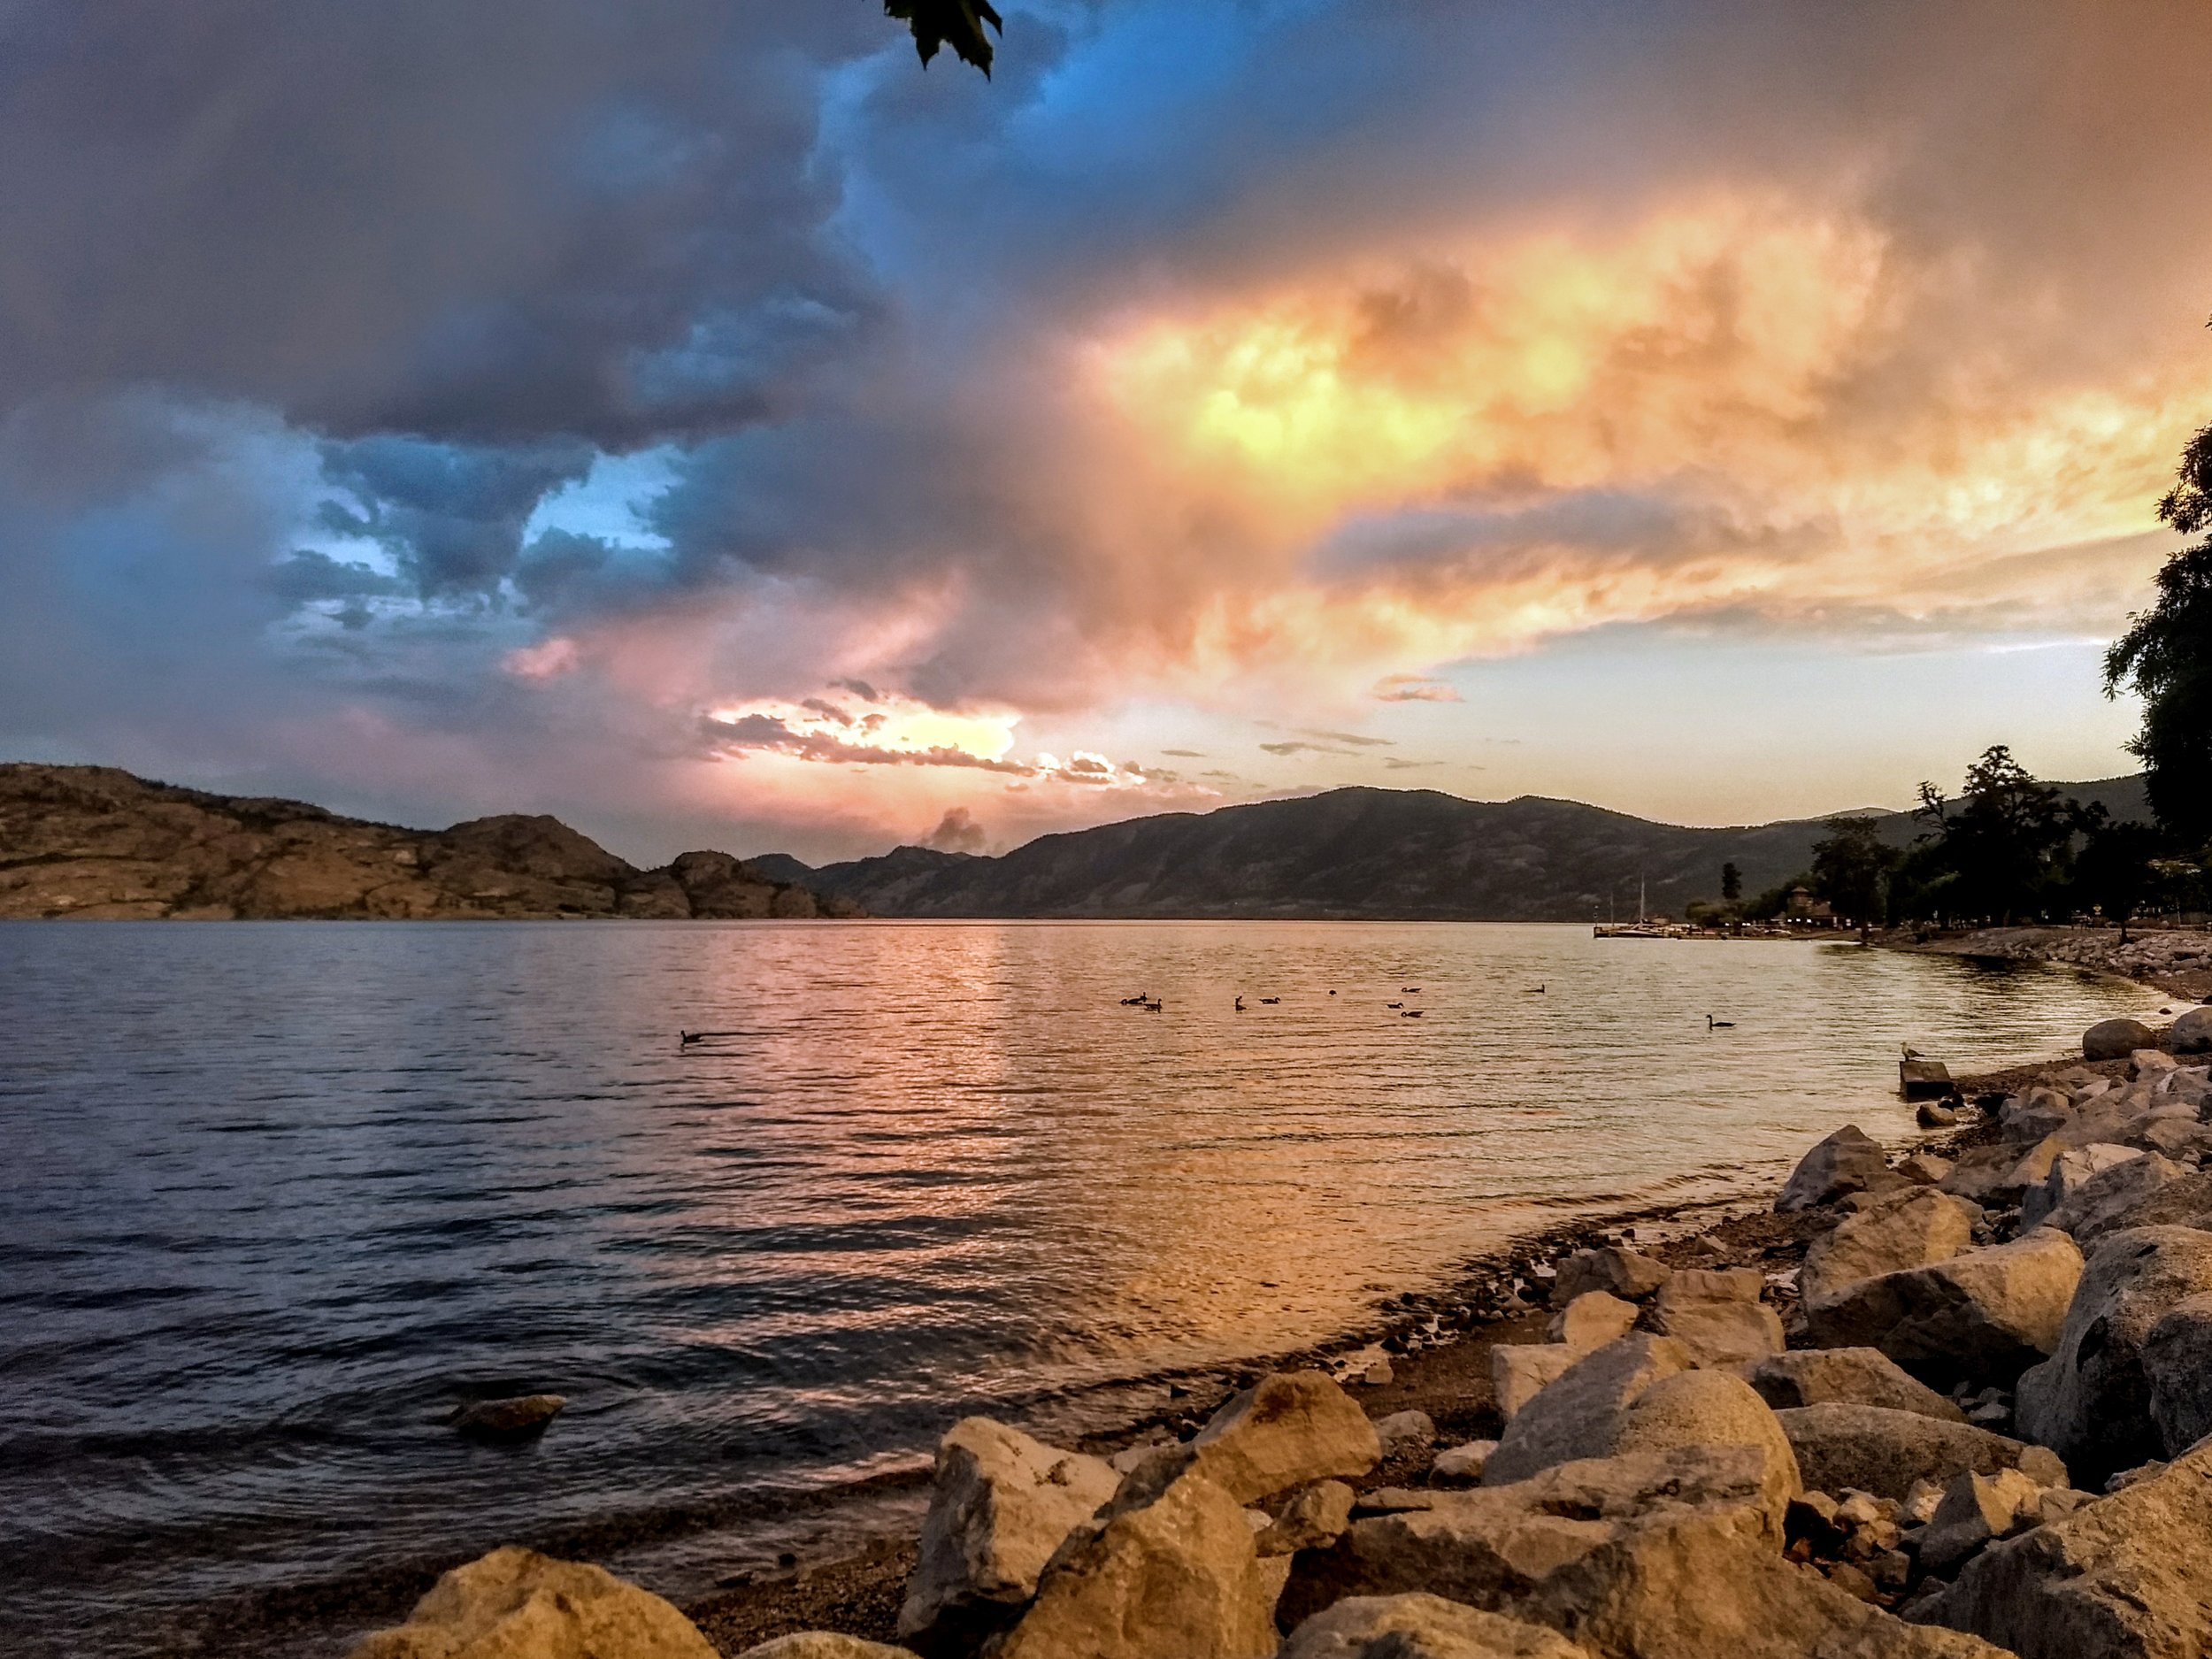 The rocky shores of Lake Okanagan are the perfect setting for unforgettable summer sunsets.